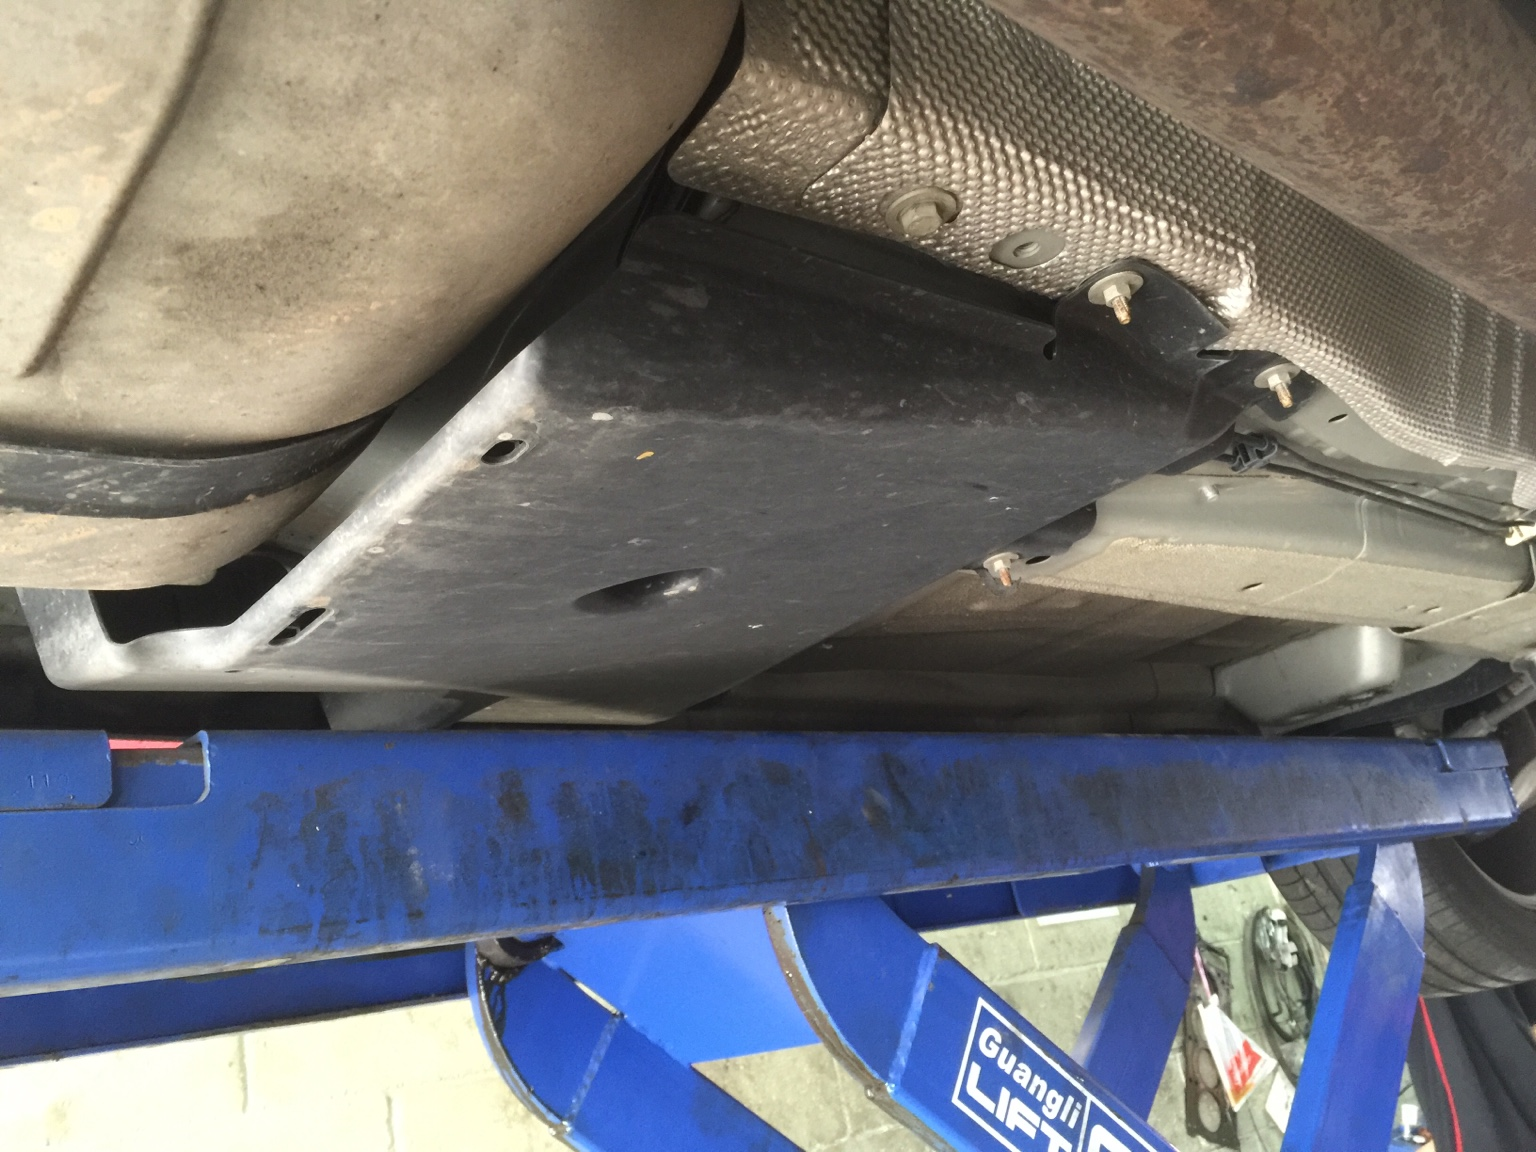 Undercarriage Plastic Protector - What is it called?